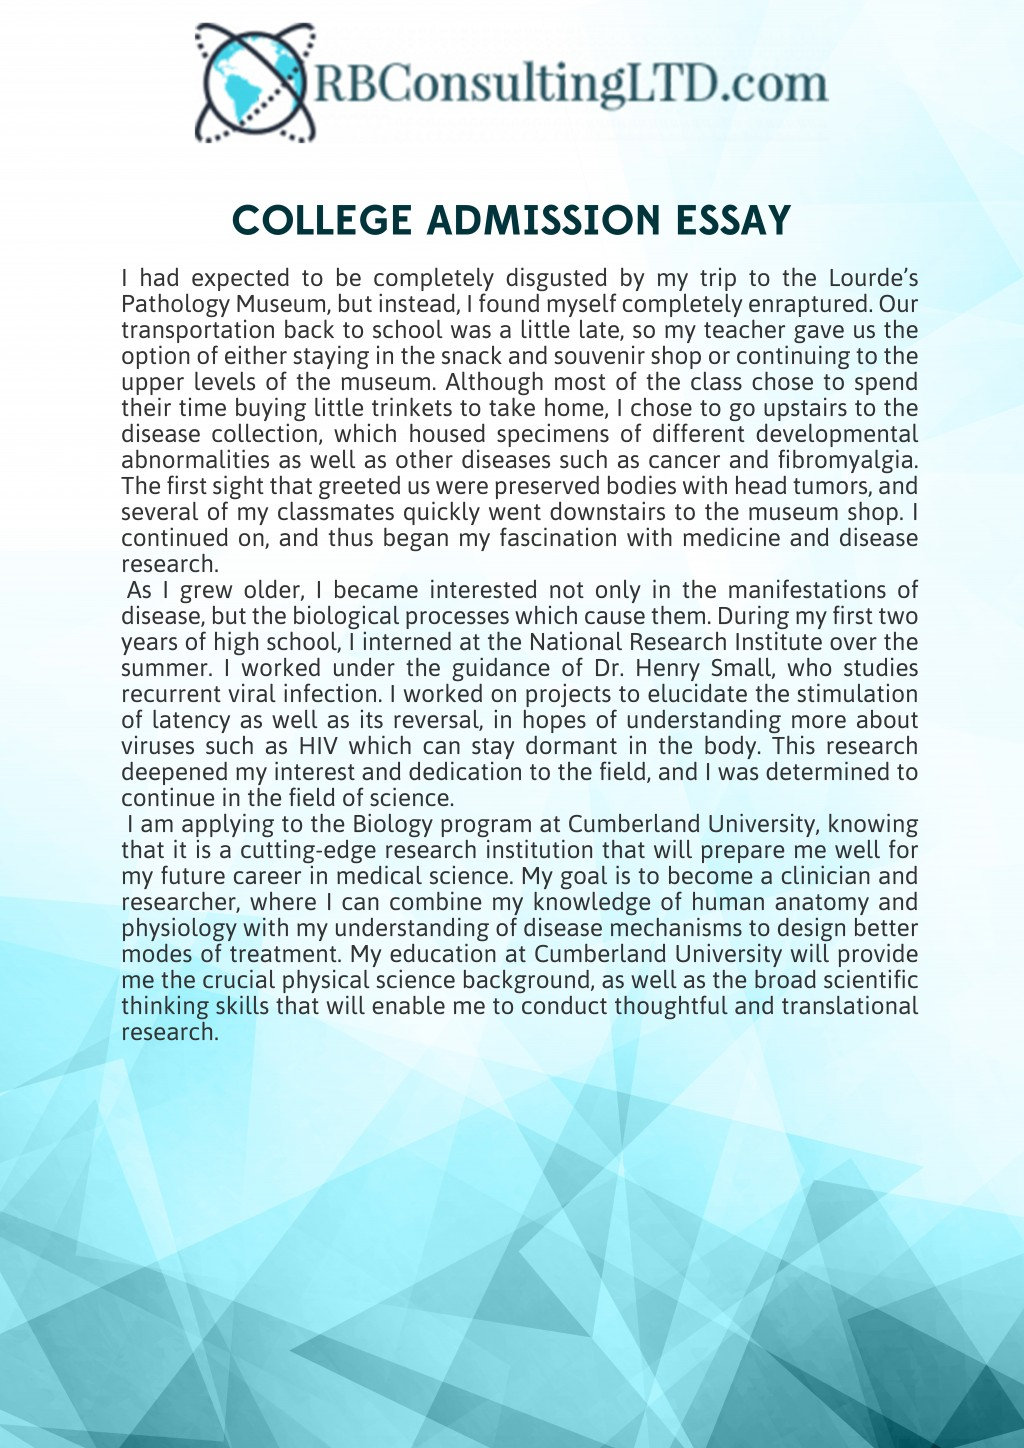 024 College Admission Essay Sample Impressive Mba Samples Pdf Free For Graduate School Large